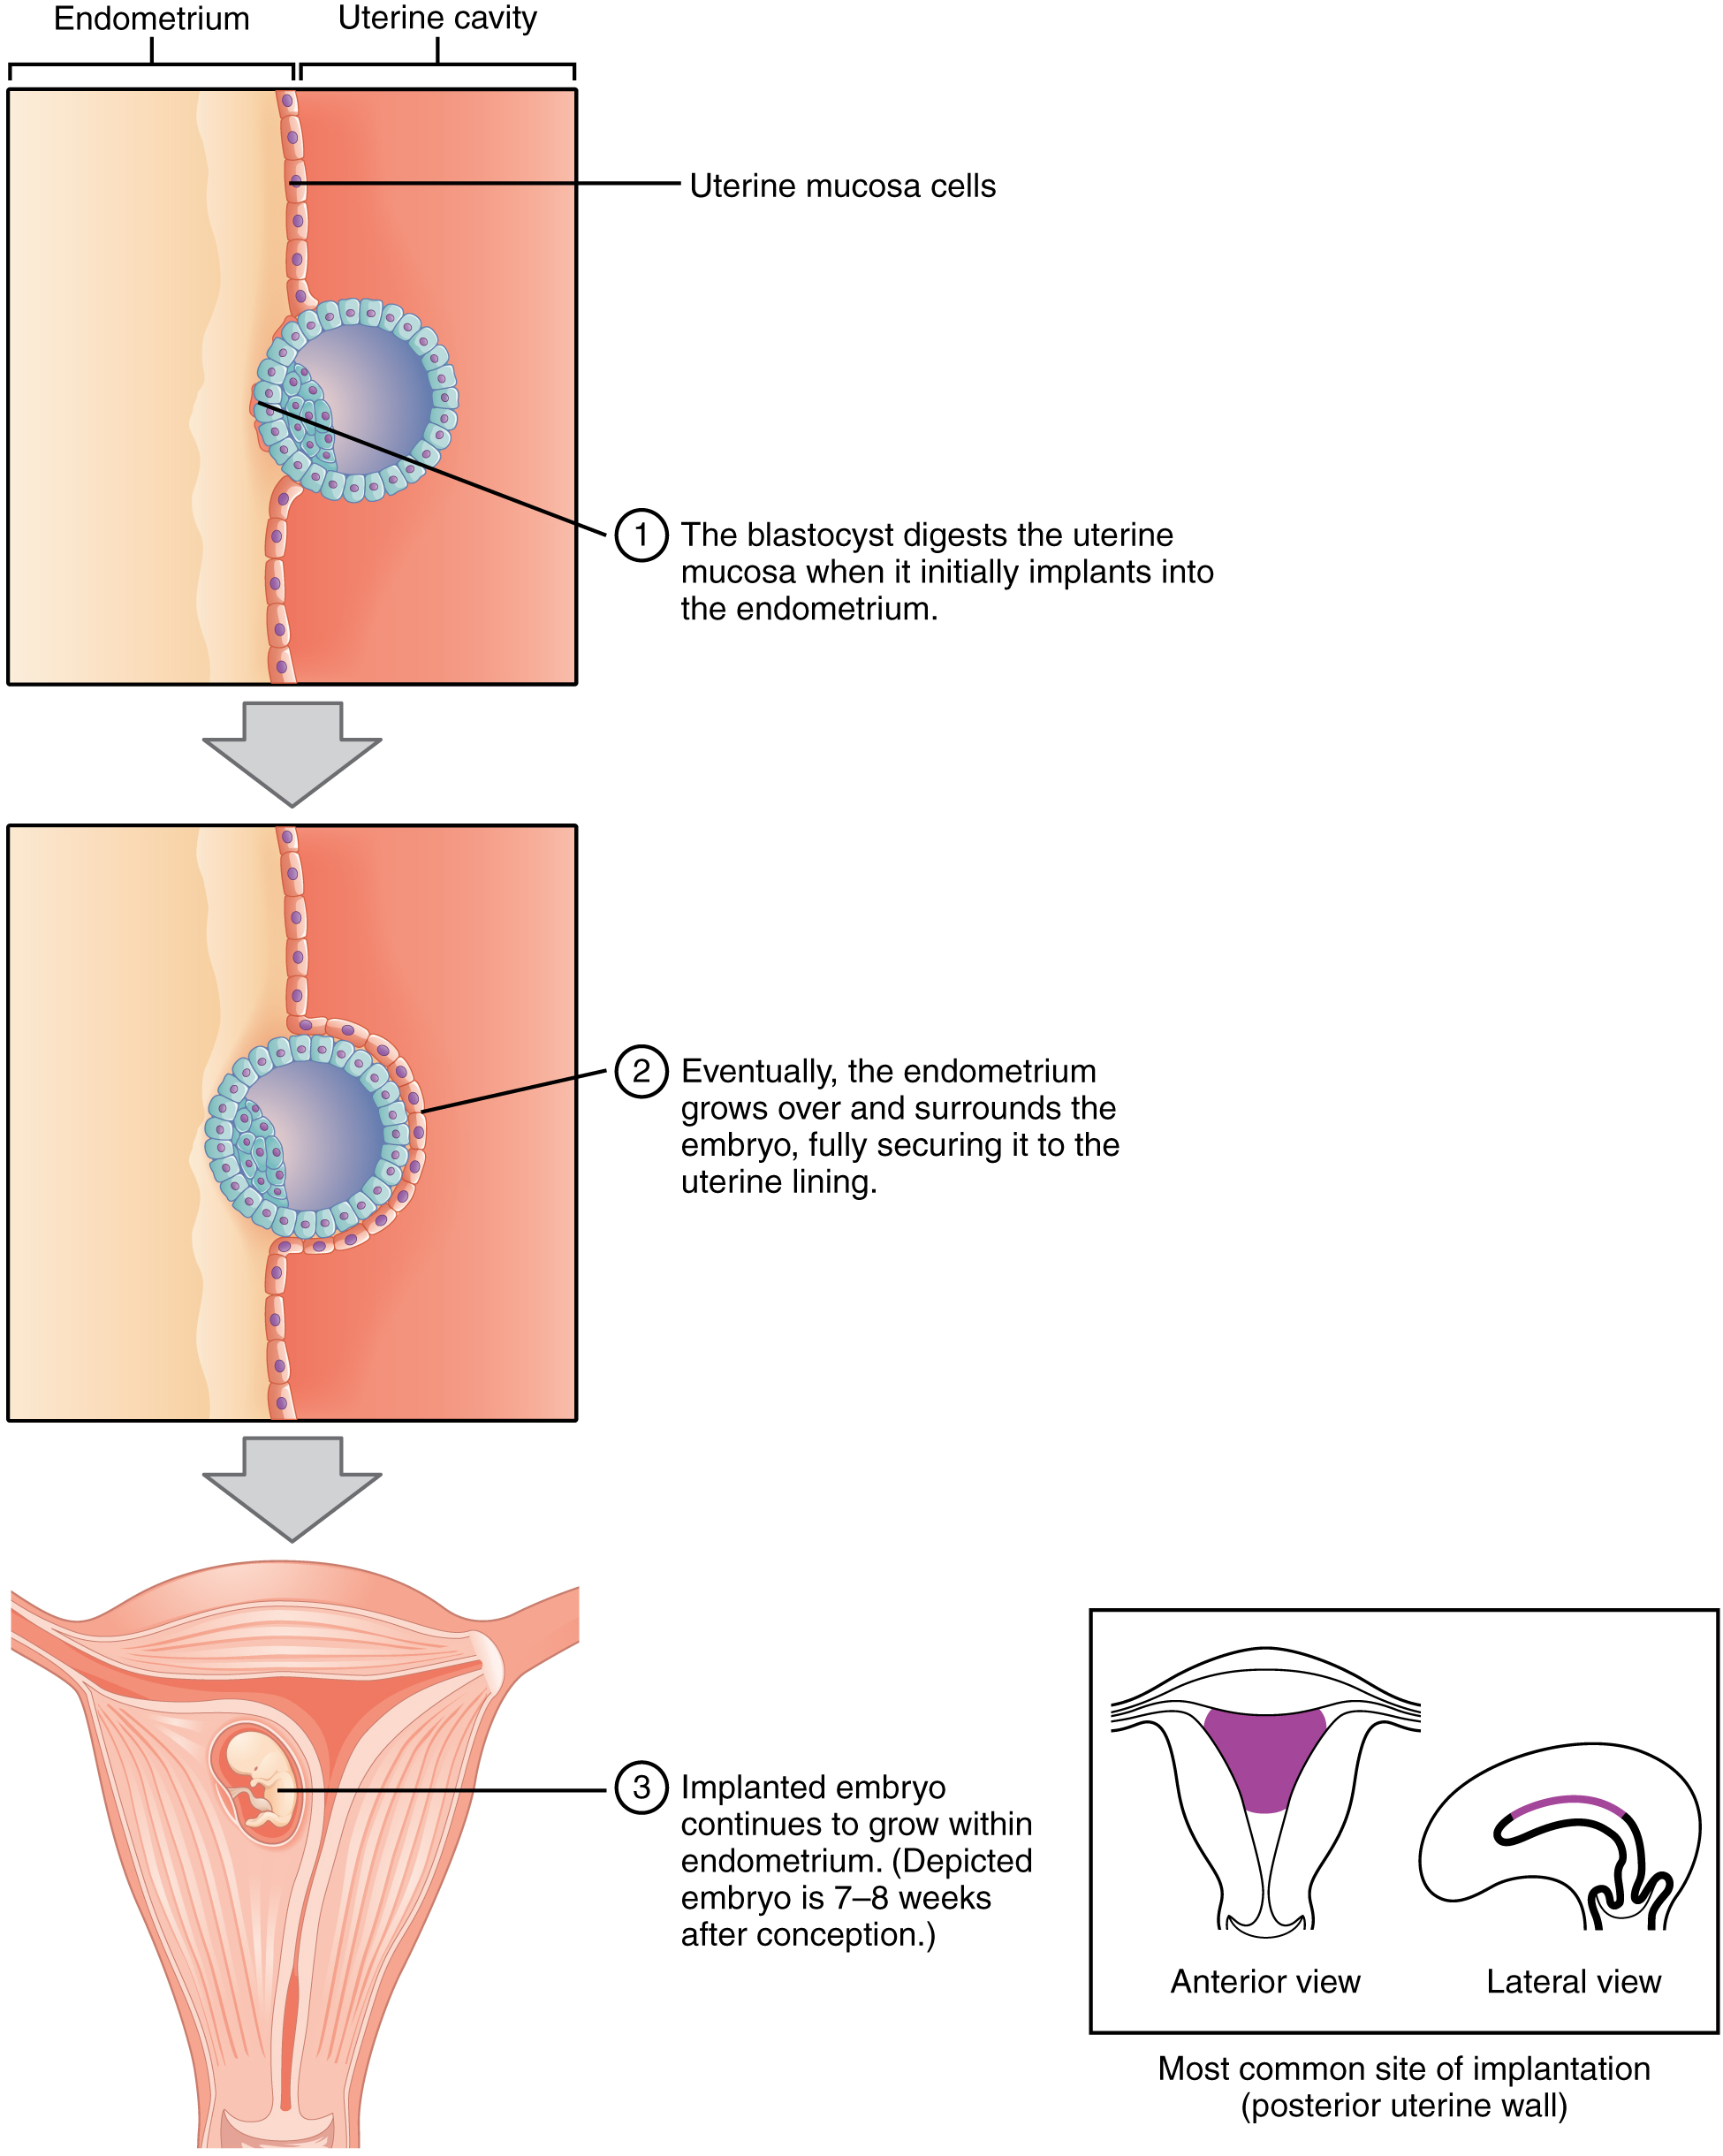 Embryonic Development · Anatomy and Physiology